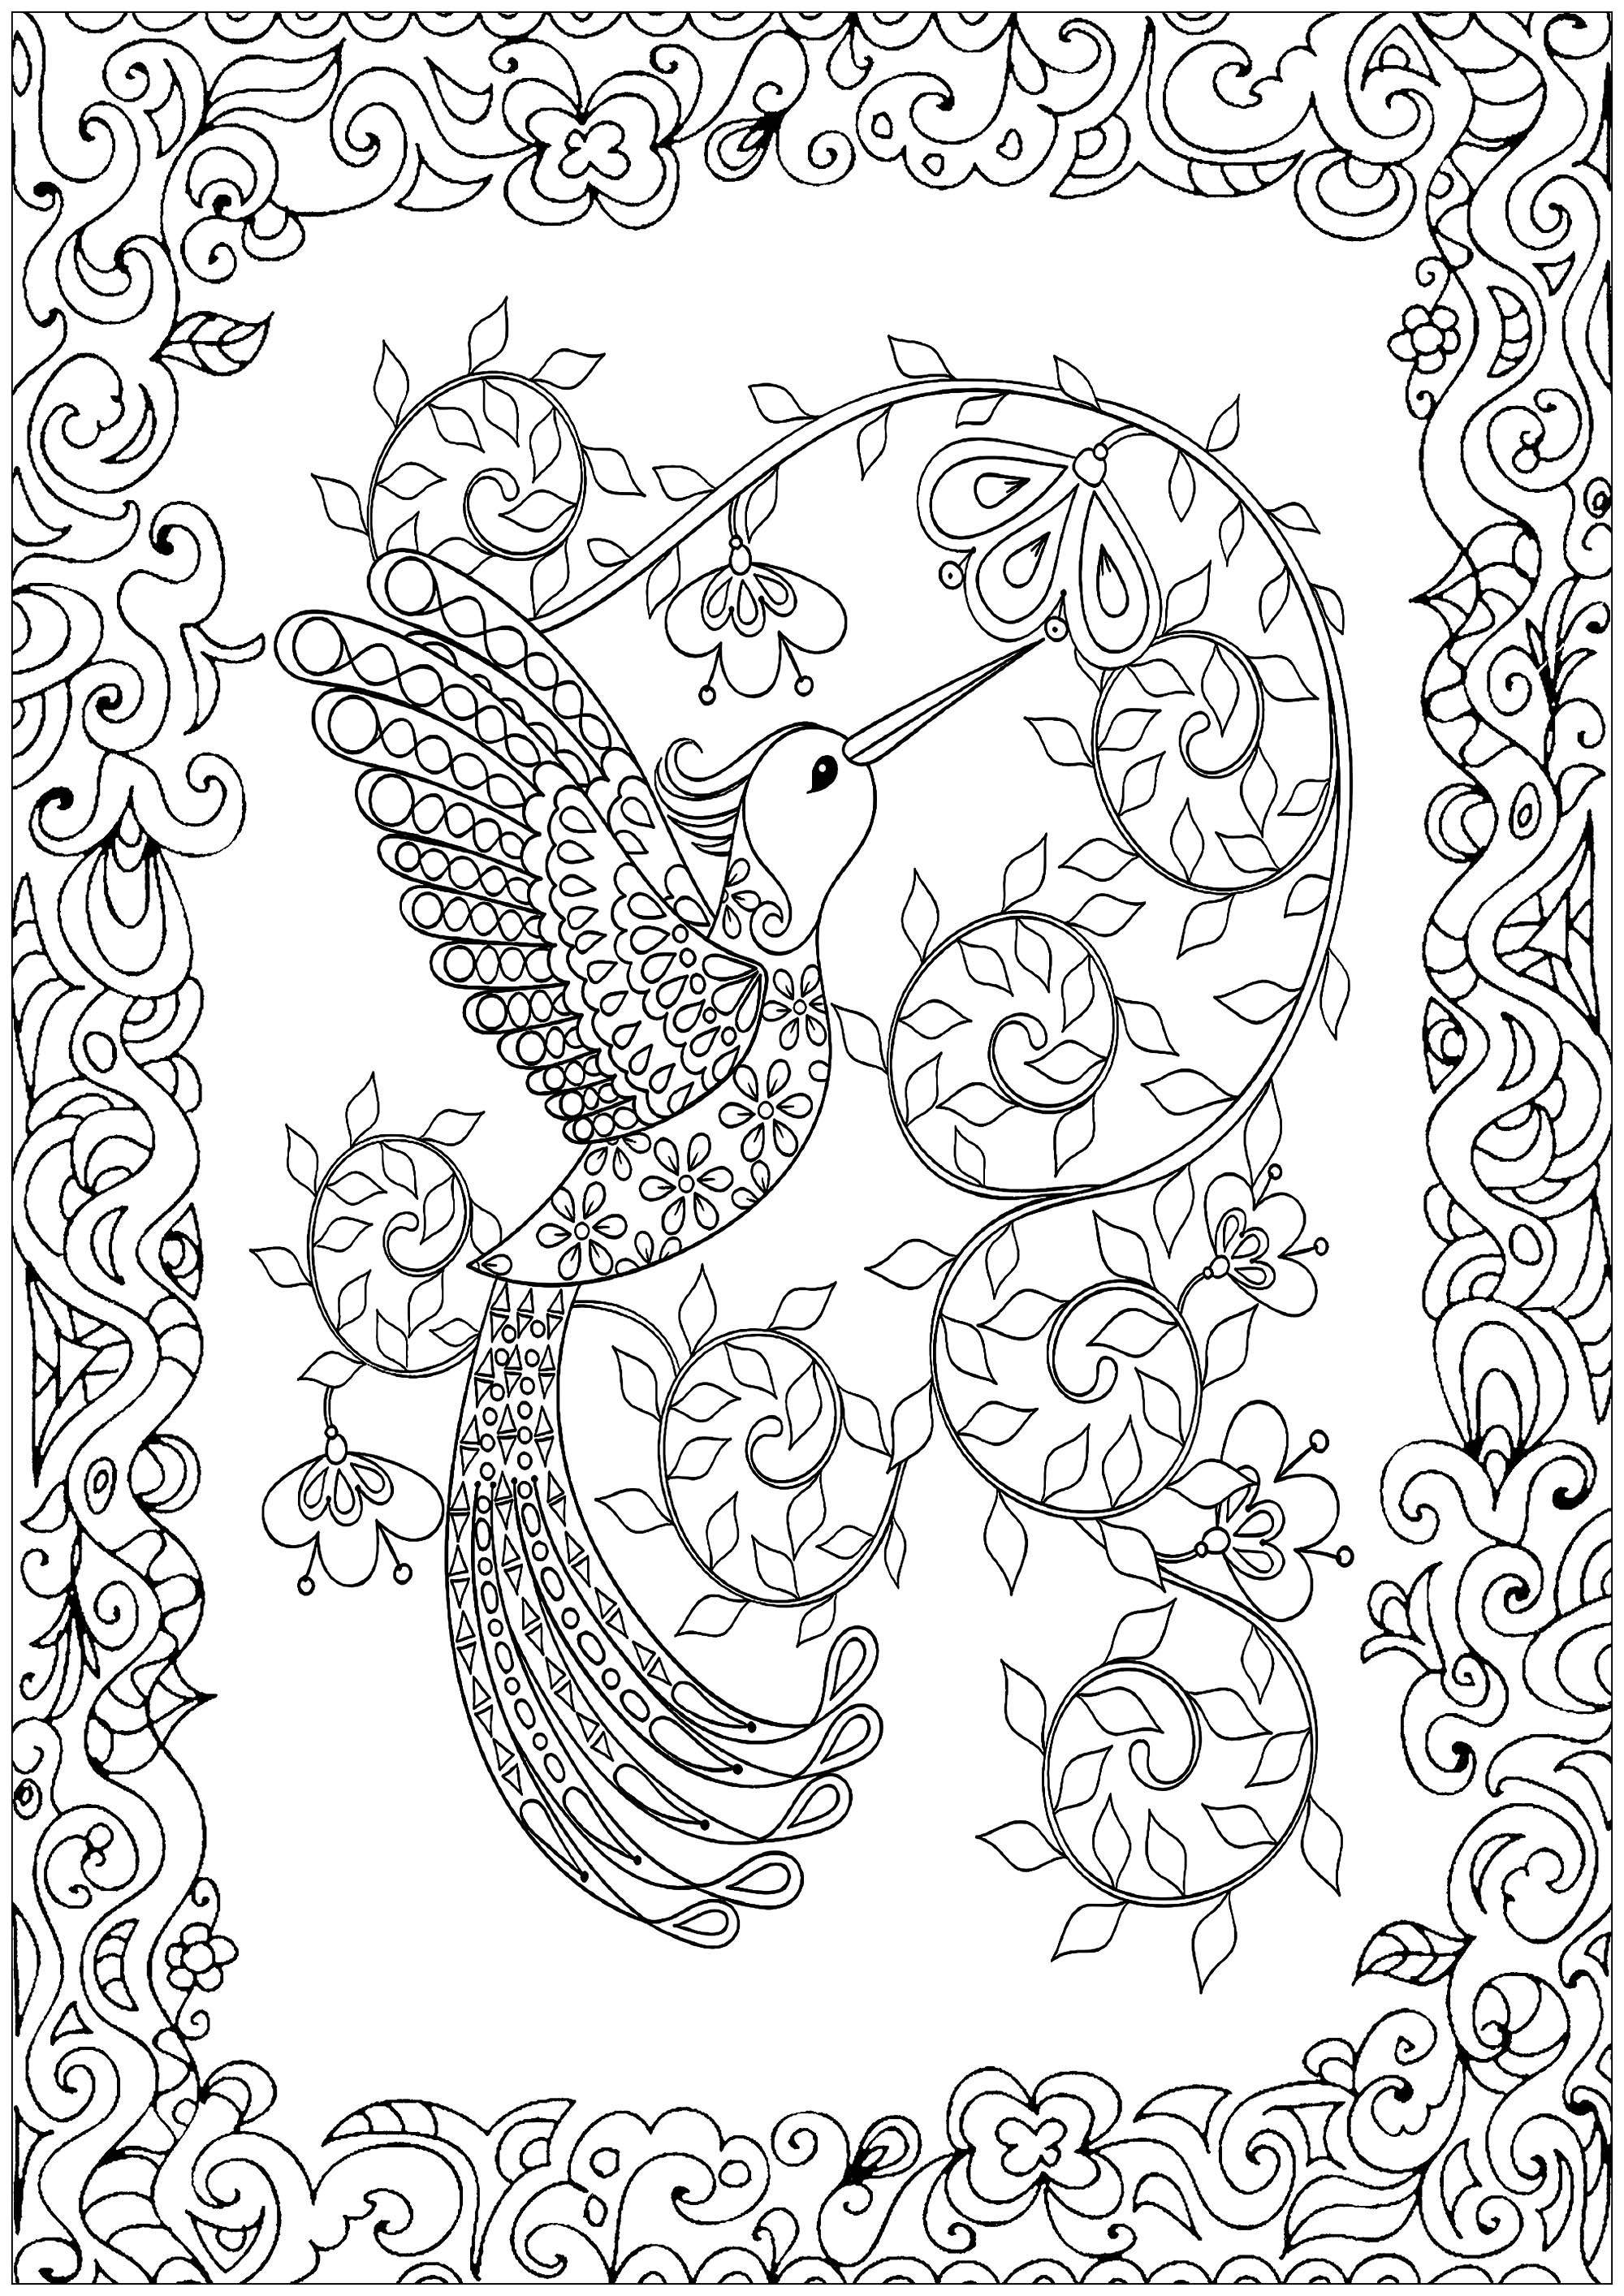 Humming bird, beautiful coloring page with border full of plant motifs to be colored